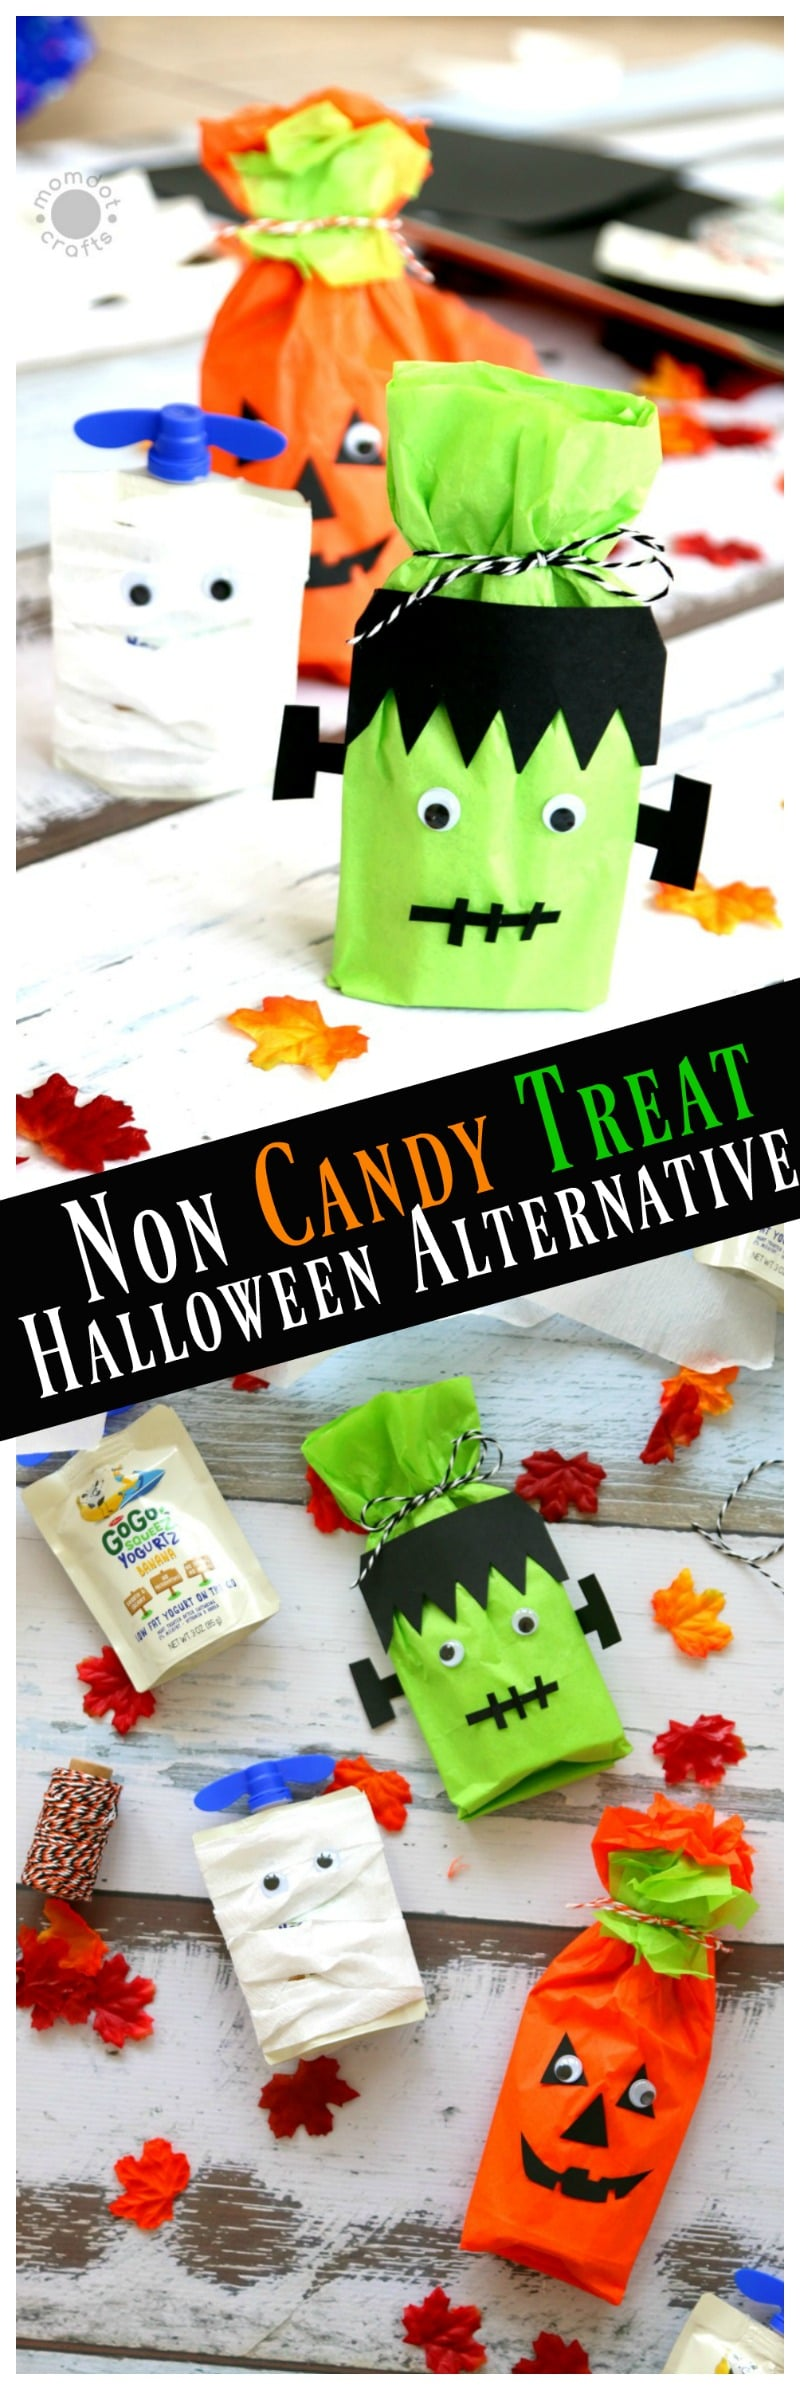 Non Candy Halloween Treat Ideas: Create Frankenstein, Pumpkin and Mummy with this No candy and Healthy Halloween Alternative while passing out candy- great classroom treat as well